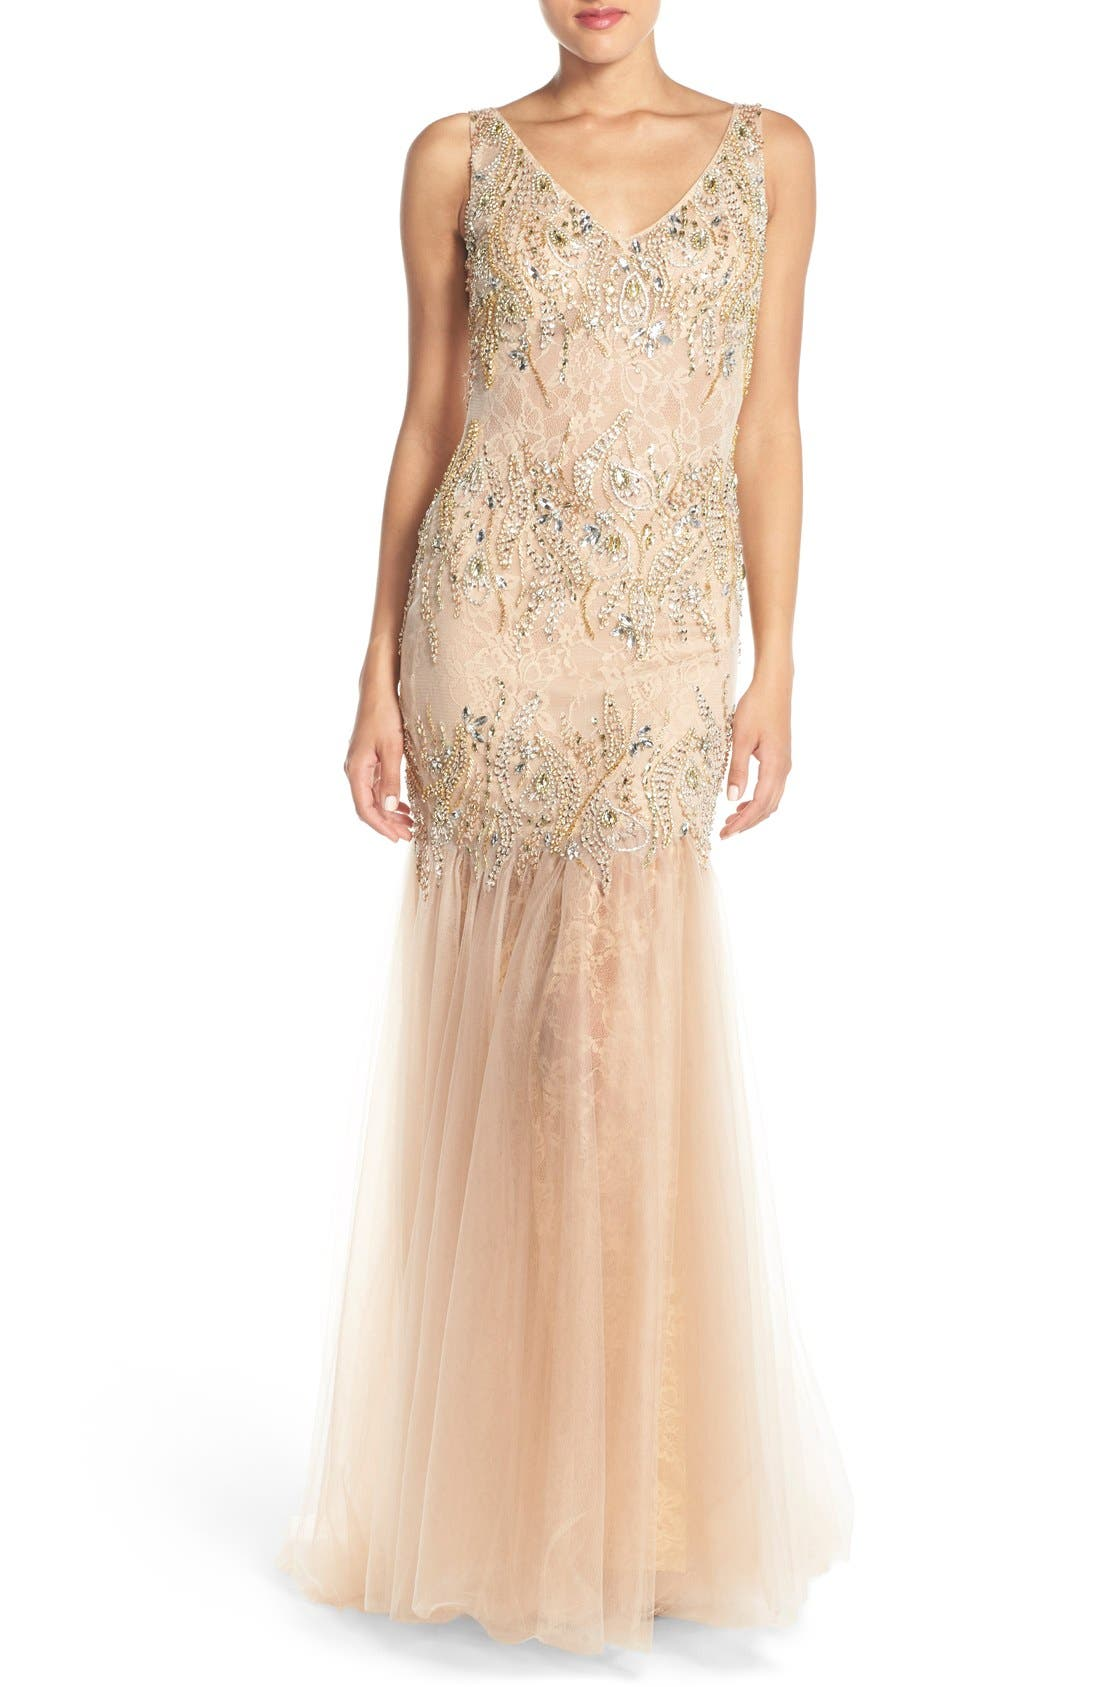 Alternate Image 1 Selected - Terani Couture Embellished Lace Mermaid Gown